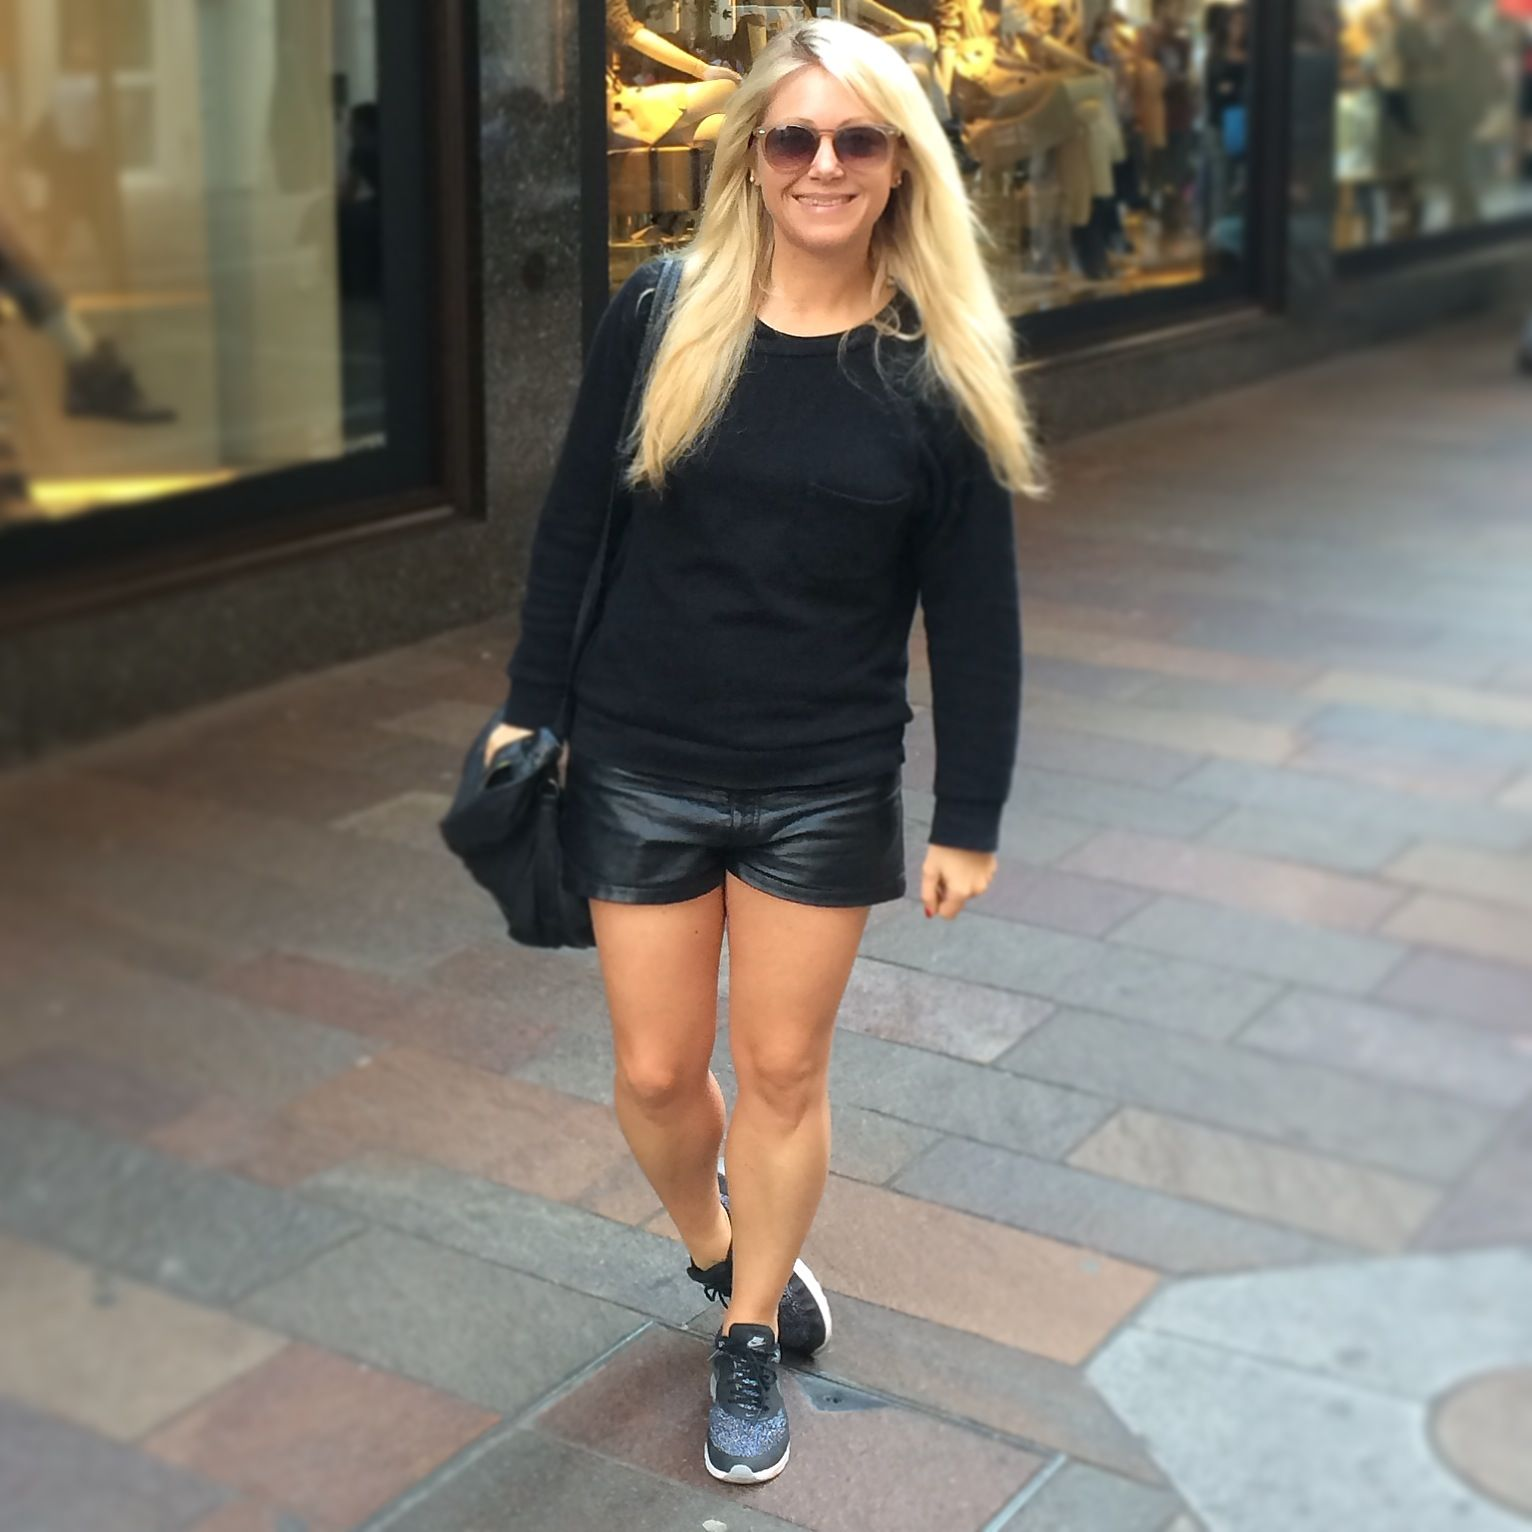 Black Topshop jumper, Leather Shorts, Nike Air Max Thea trainers